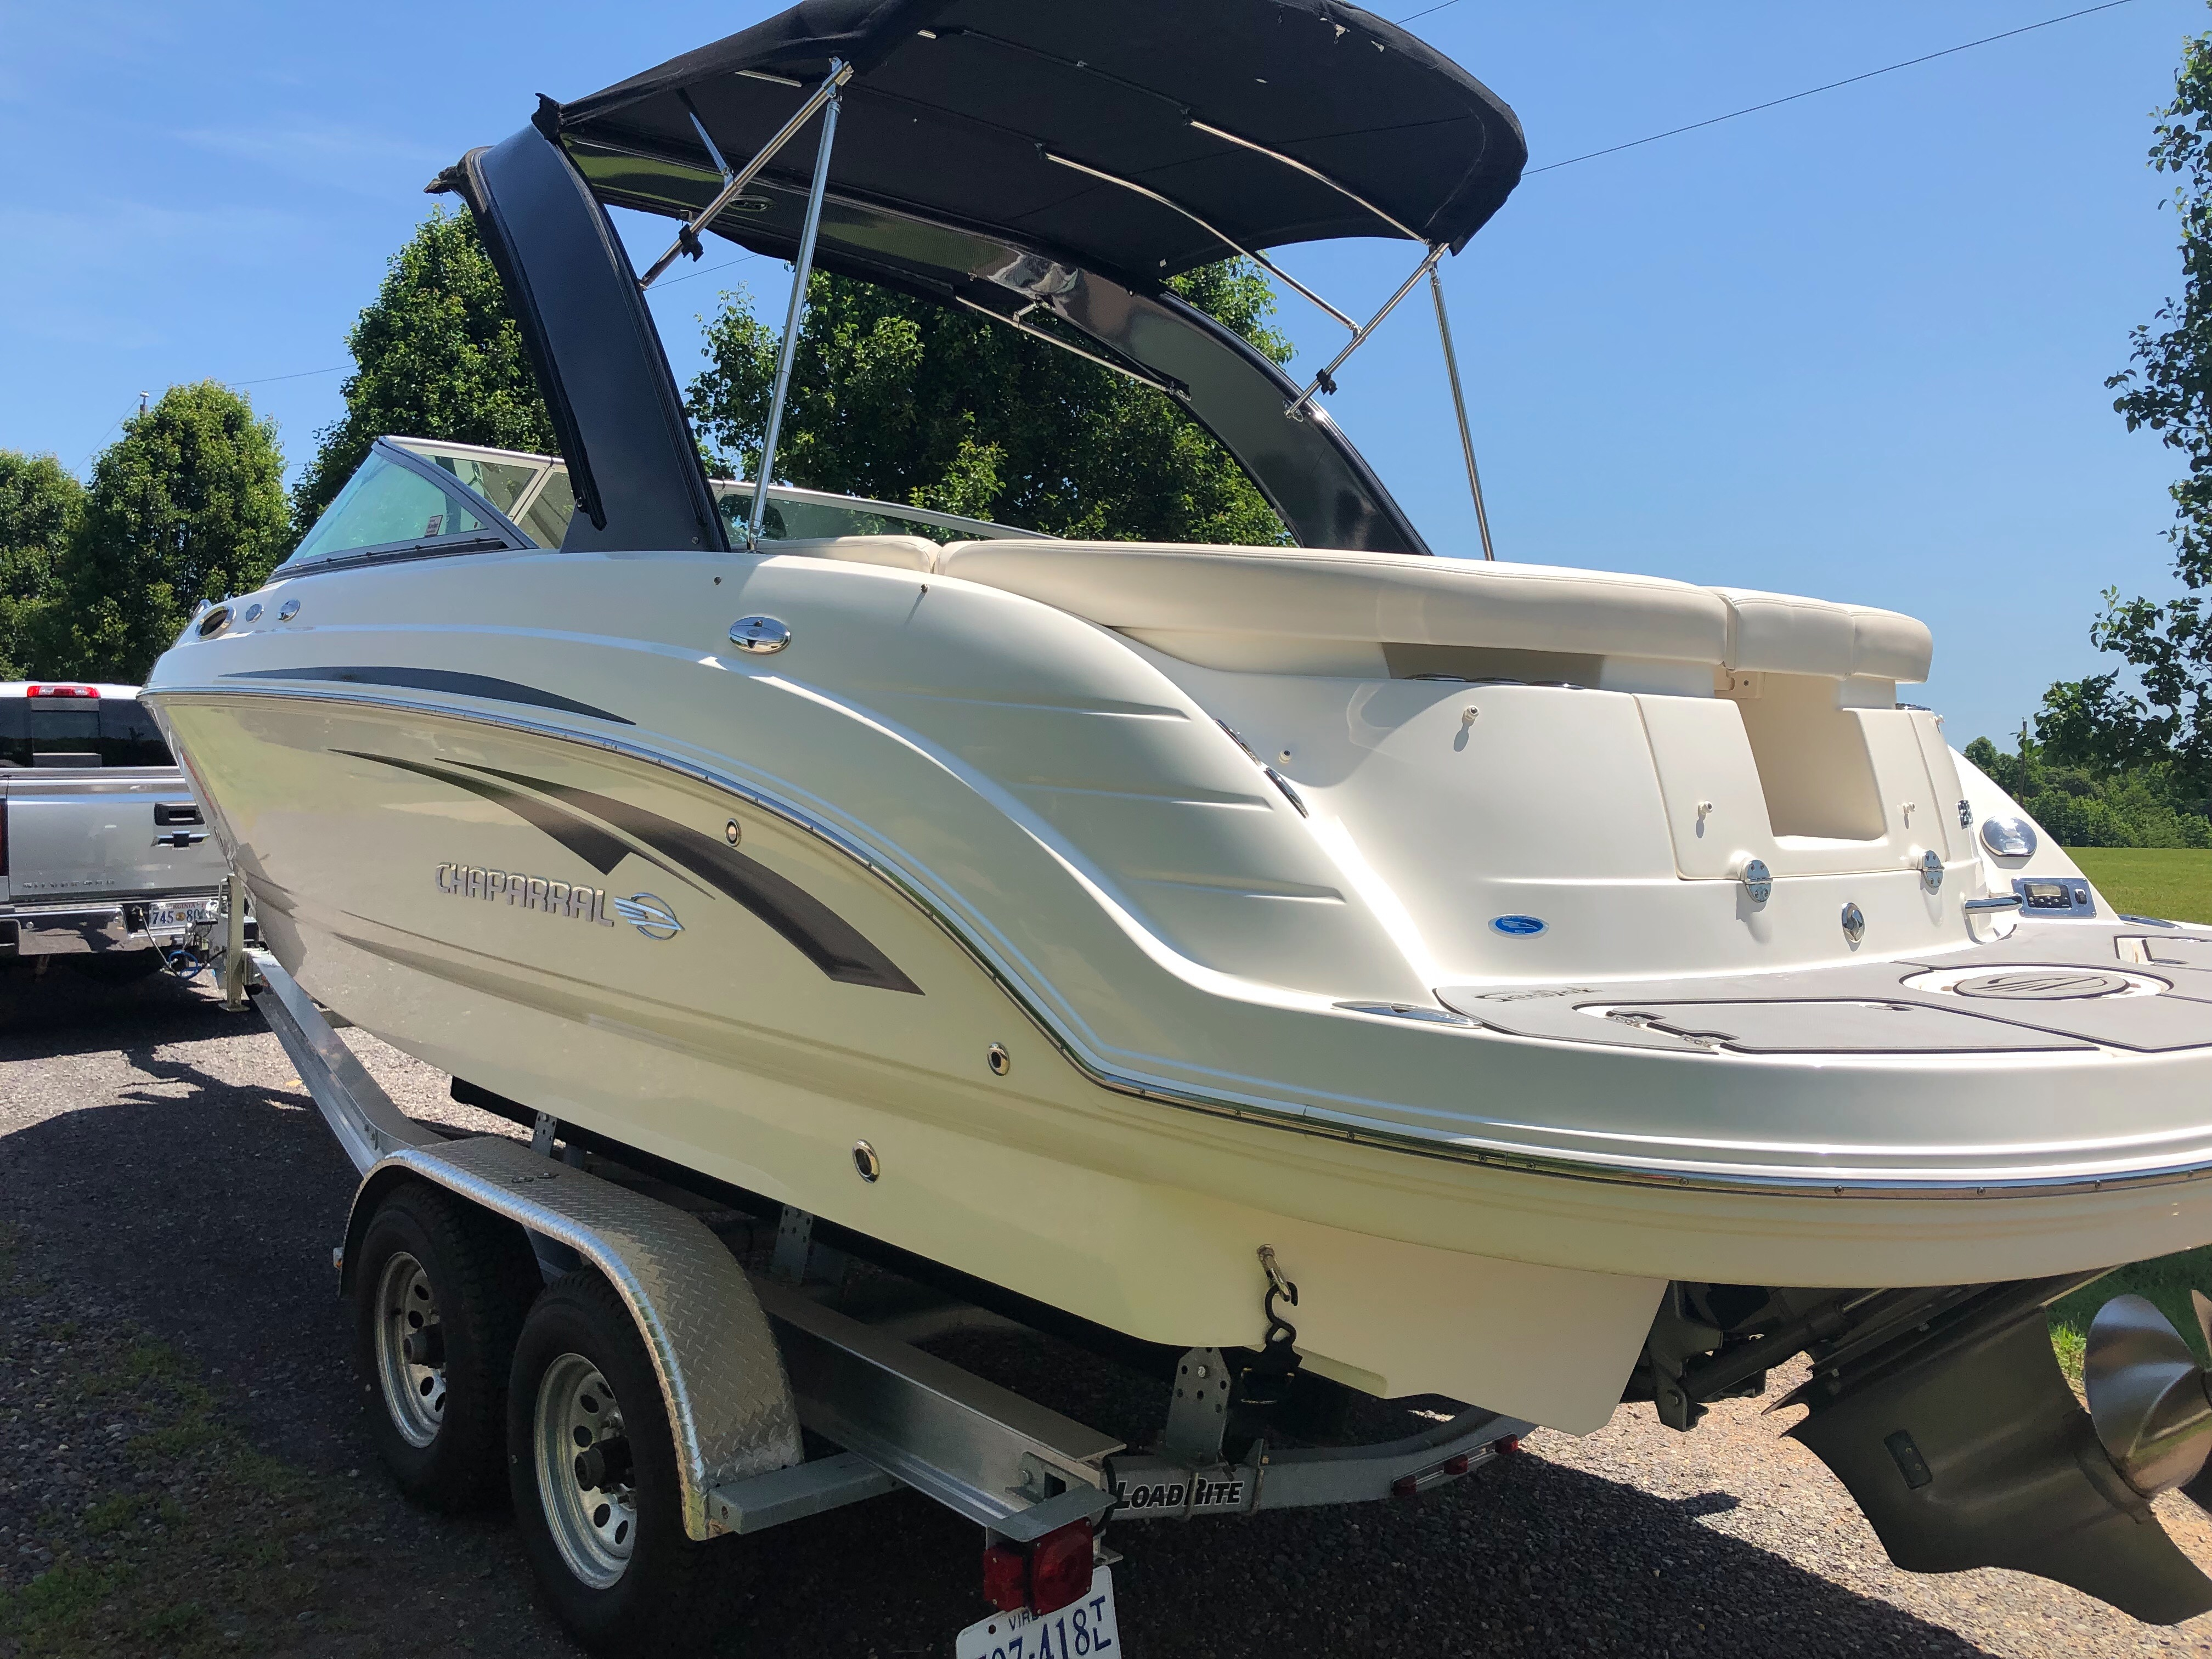 Chaparral boats for sale in Virginia - Boat Trader